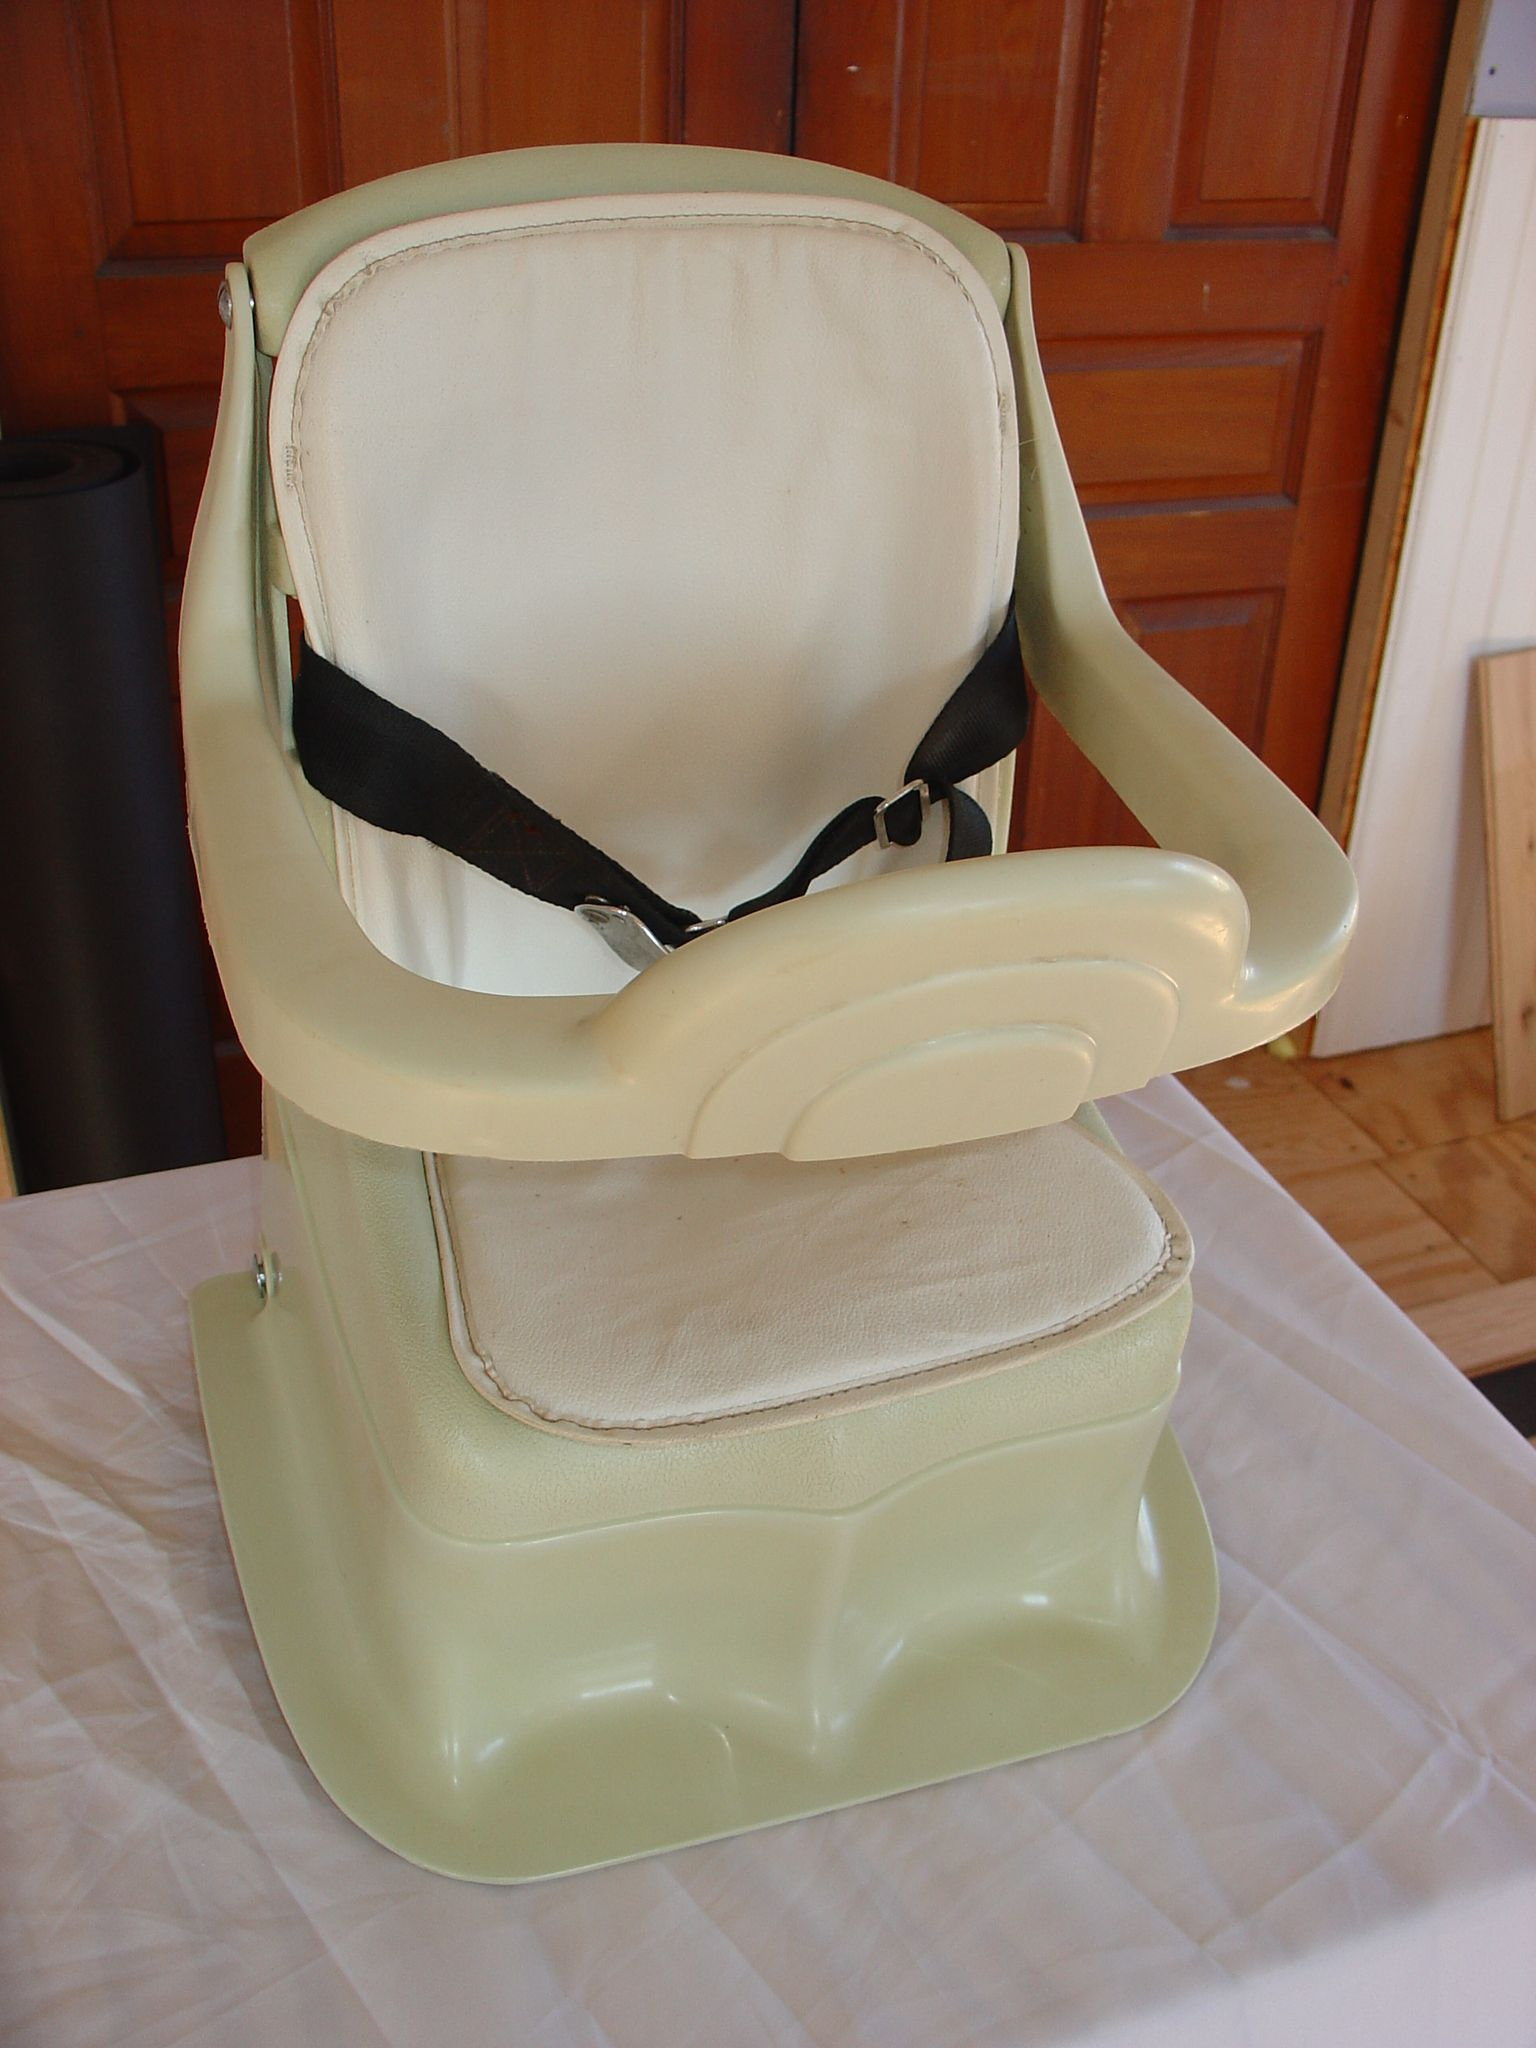 GM CR1 1969 (With images) Child safety seat, Vintage